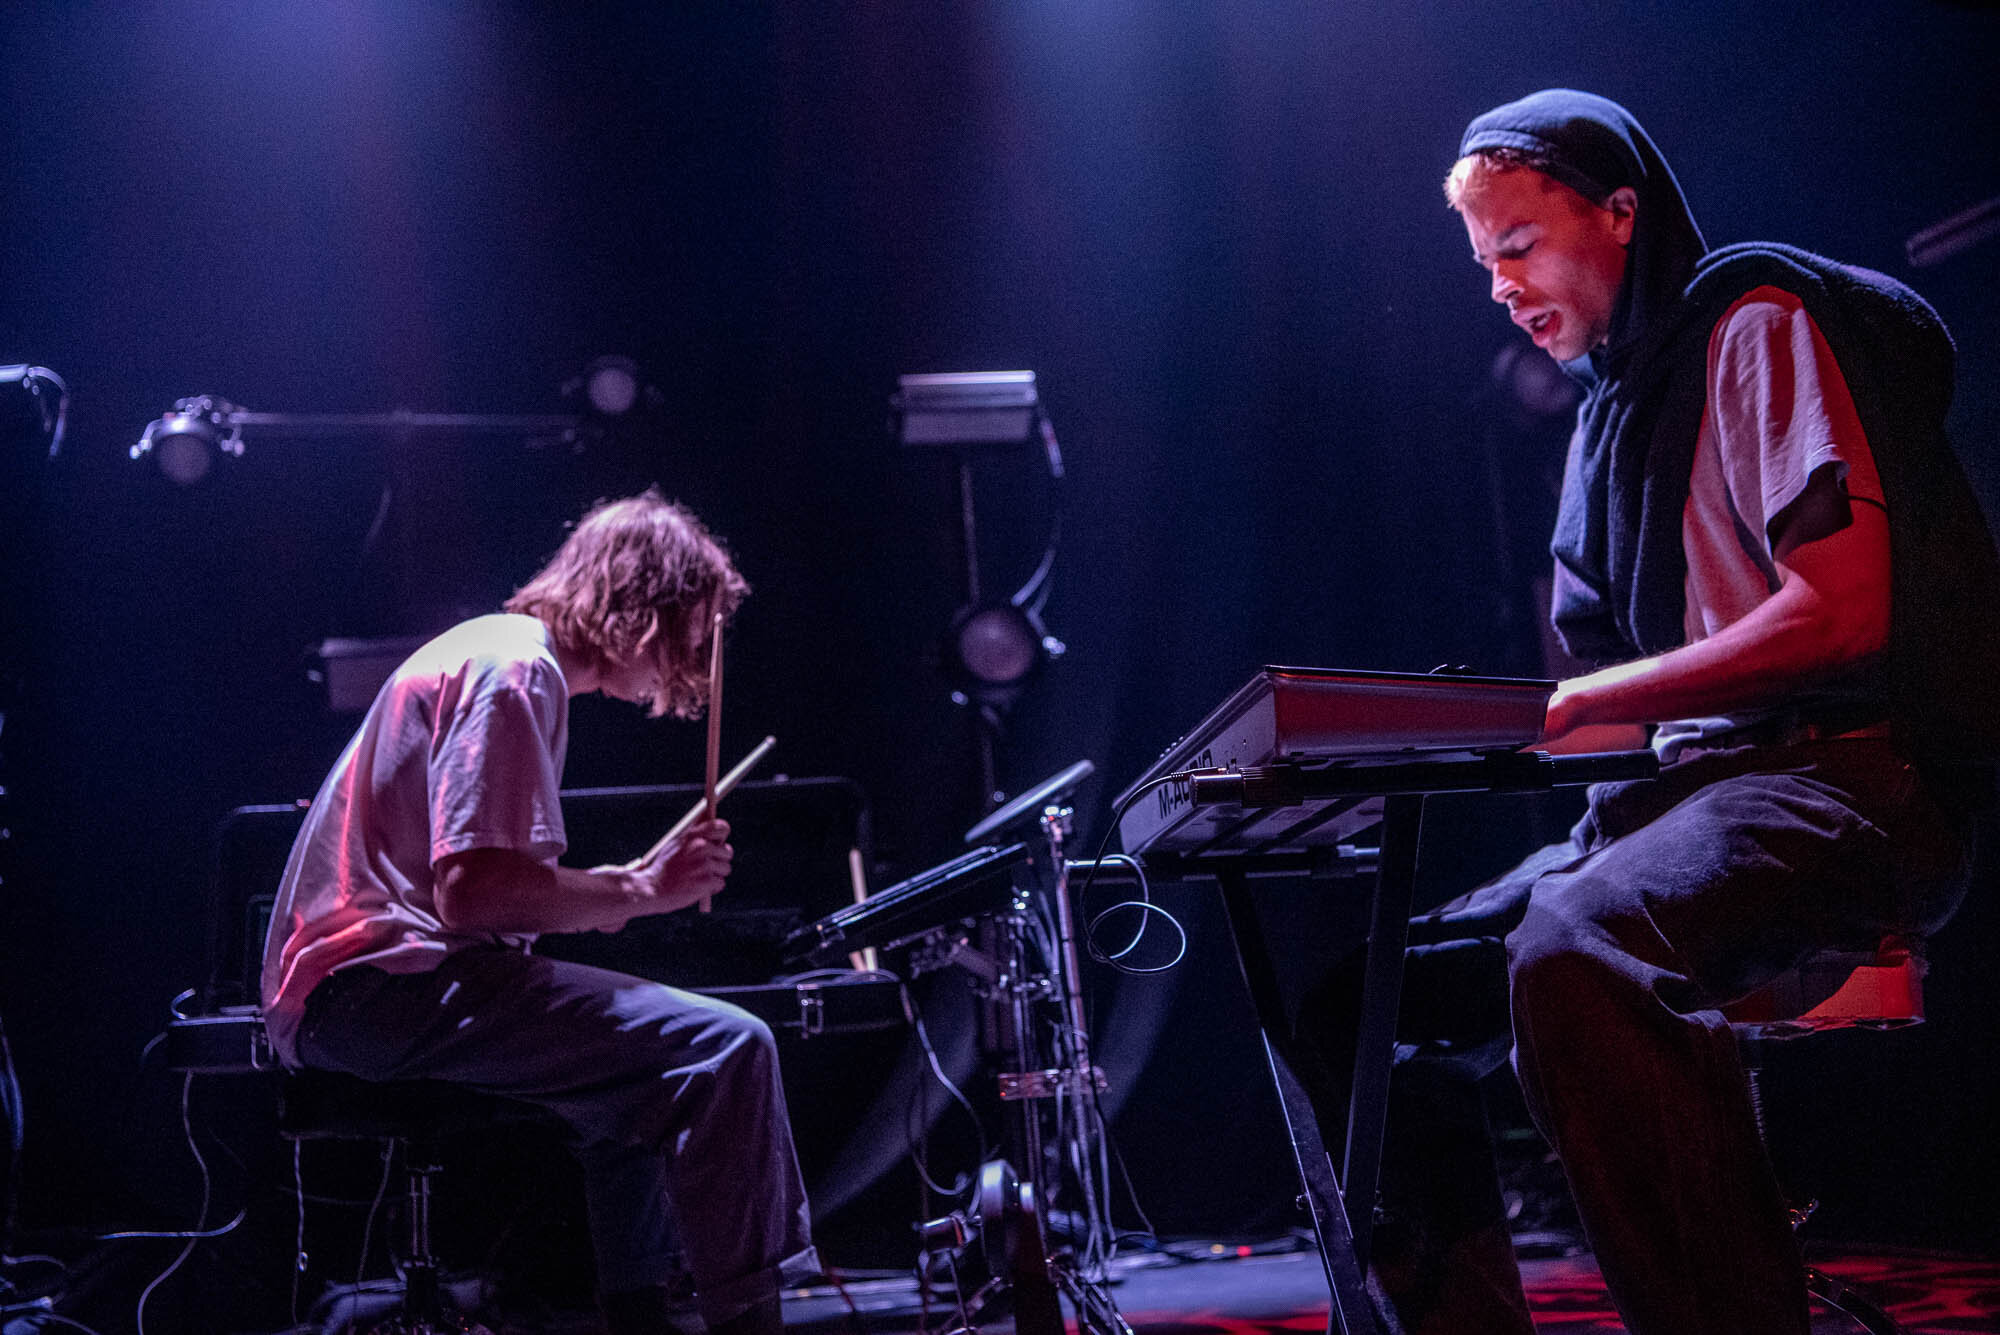 Body Meat at Gramercy Theatre on Wednesday, September 25, 2019.